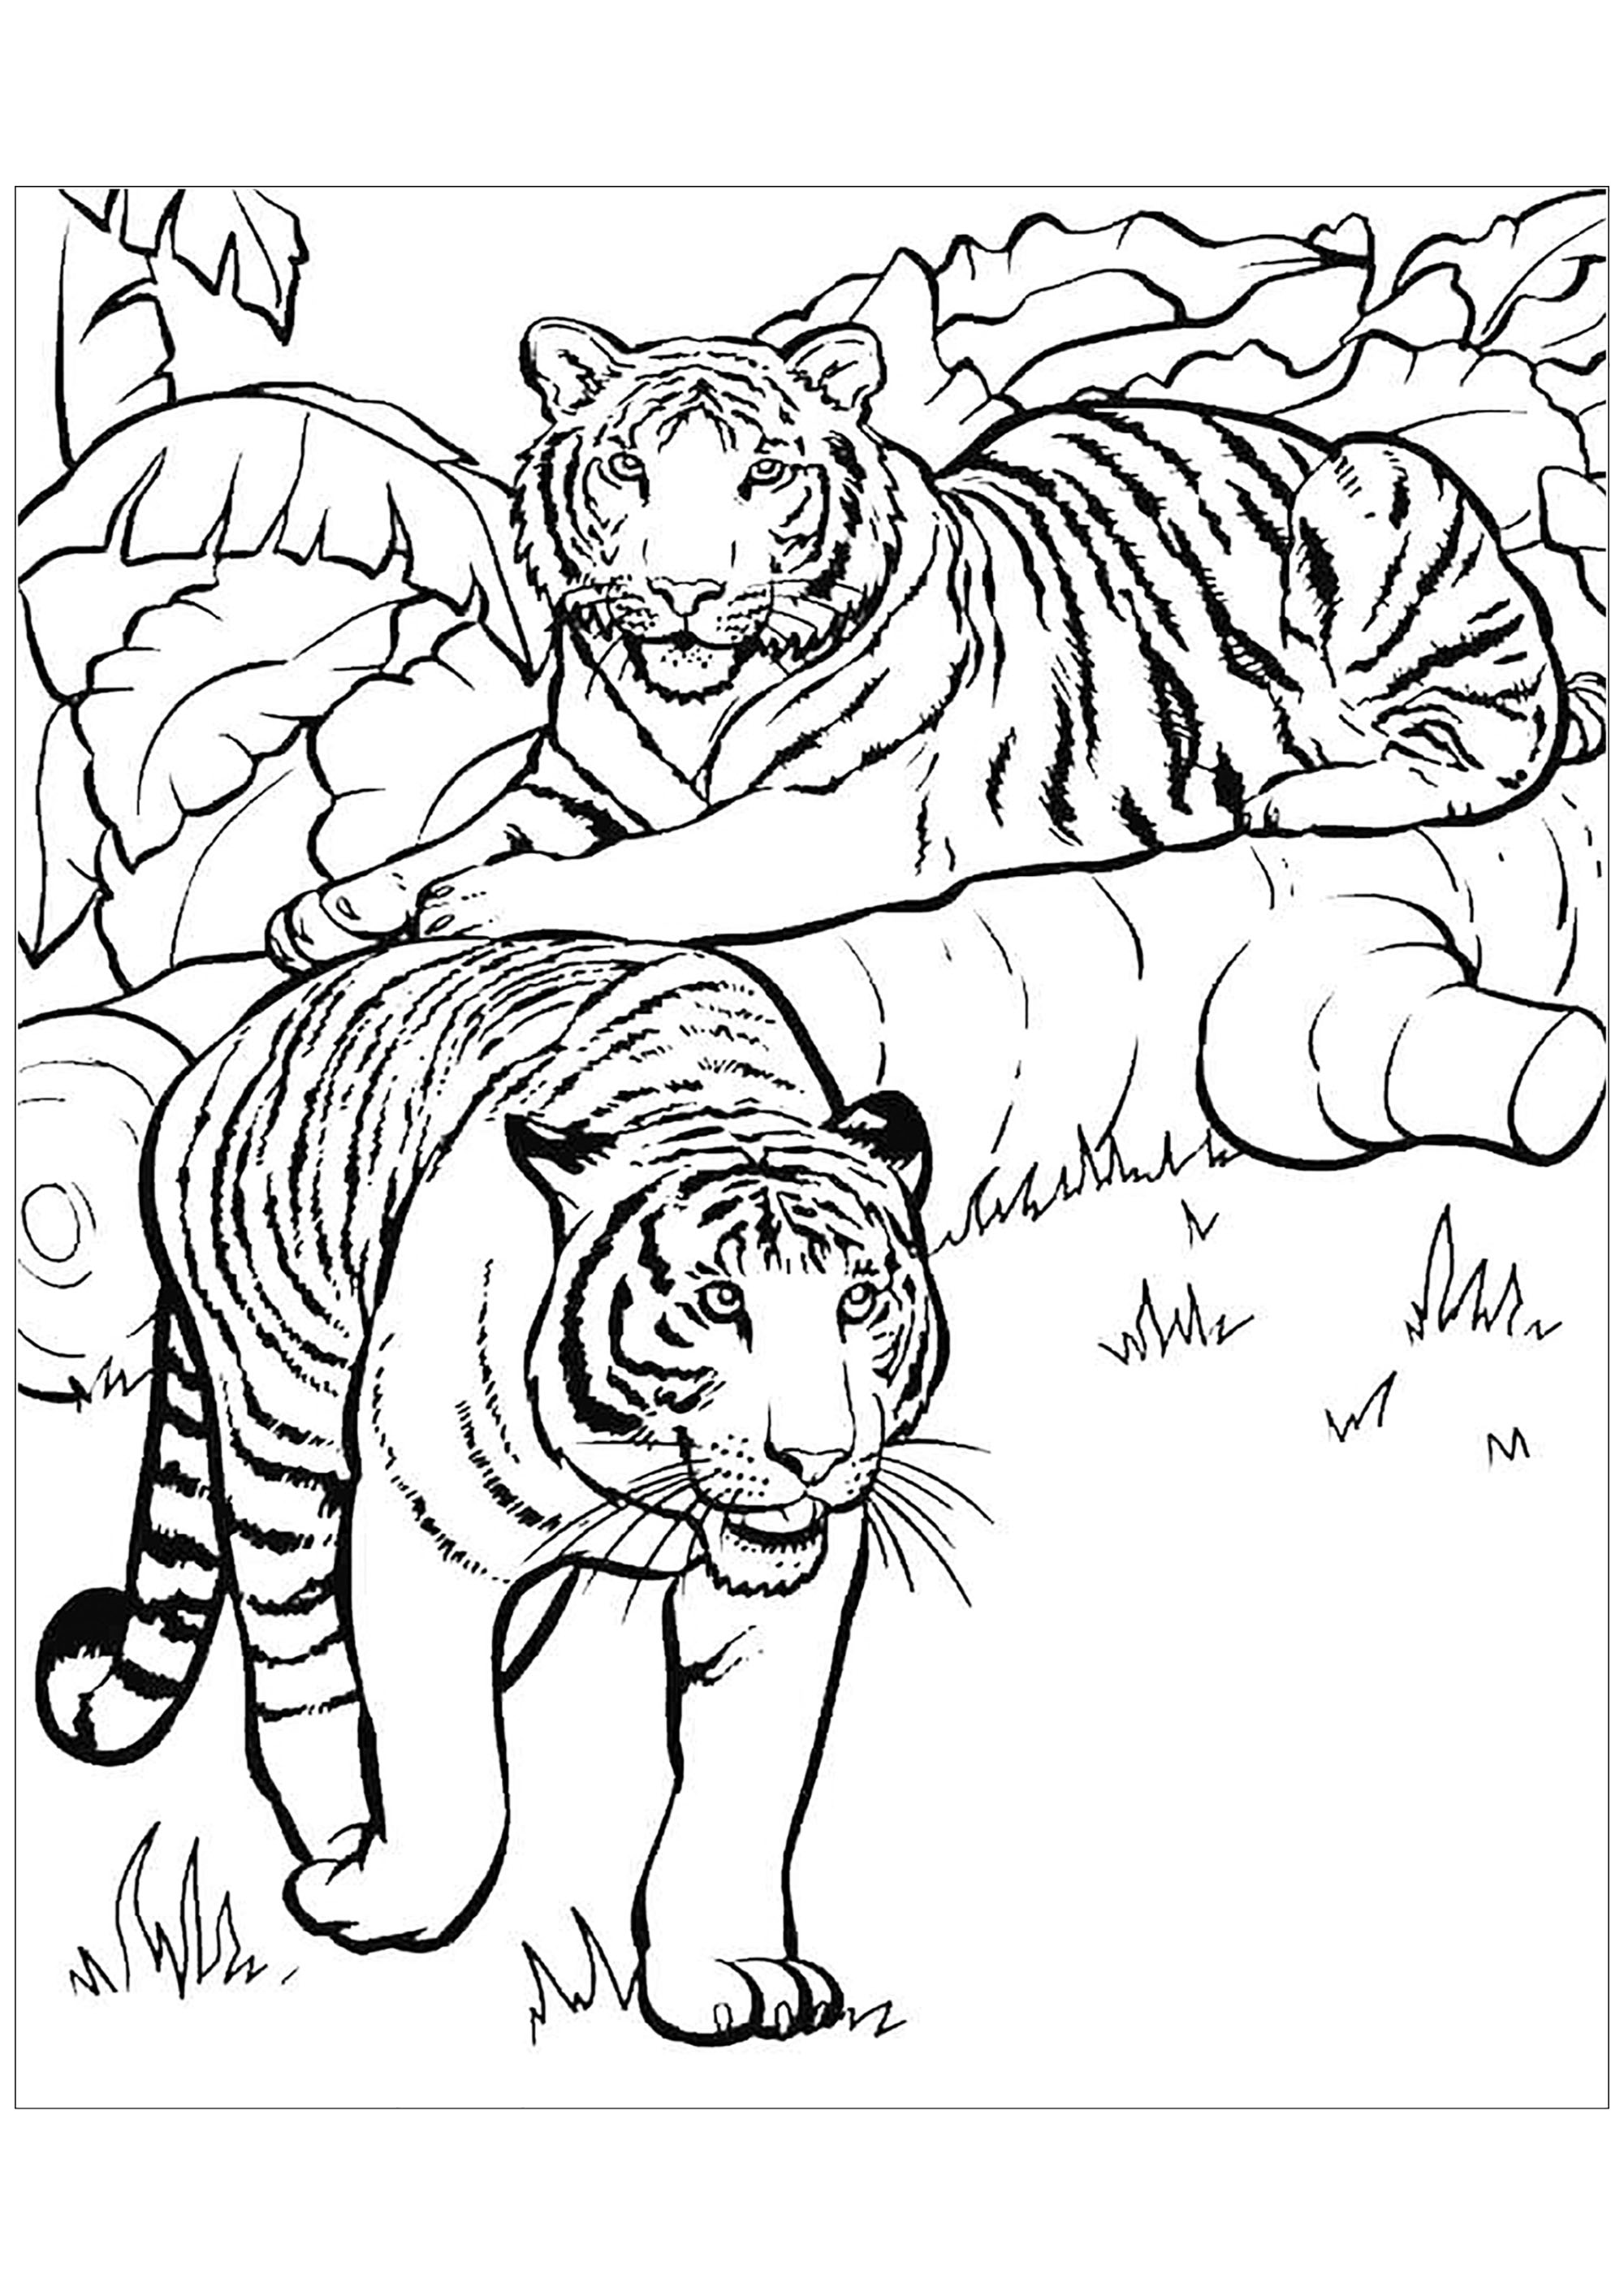 tiger coloring games tigers to print for free tigers kids coloring pages coloring games tiger